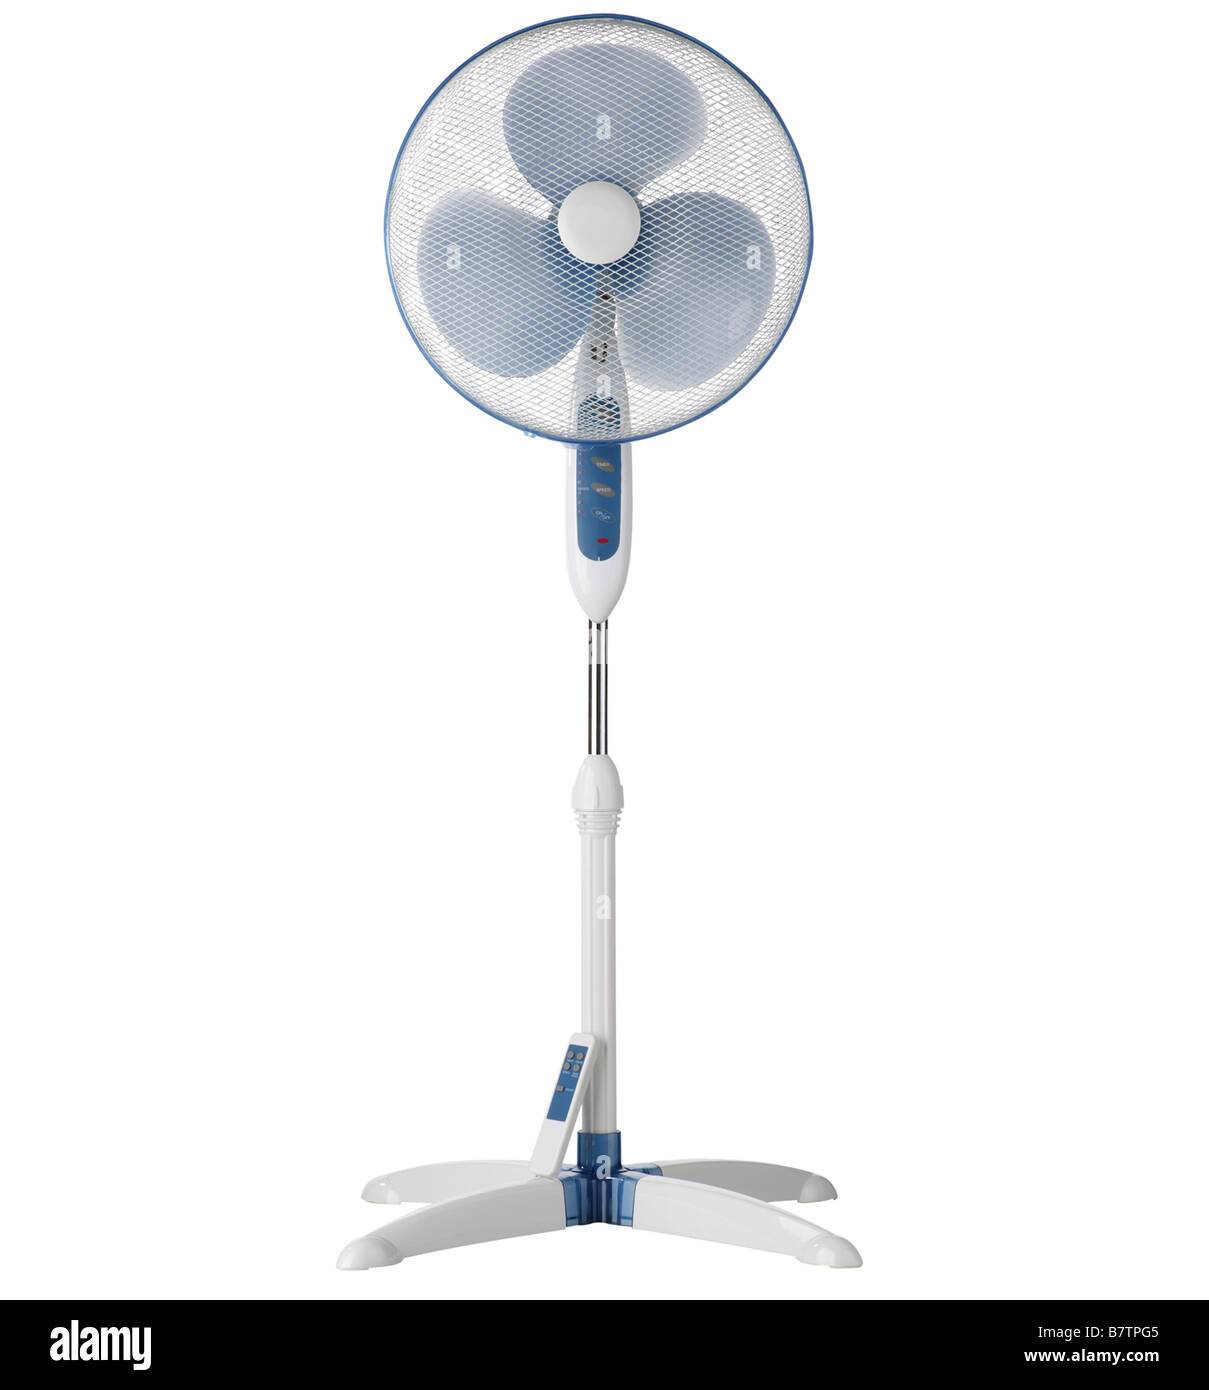 Ventilateur sur pied Photo Stock